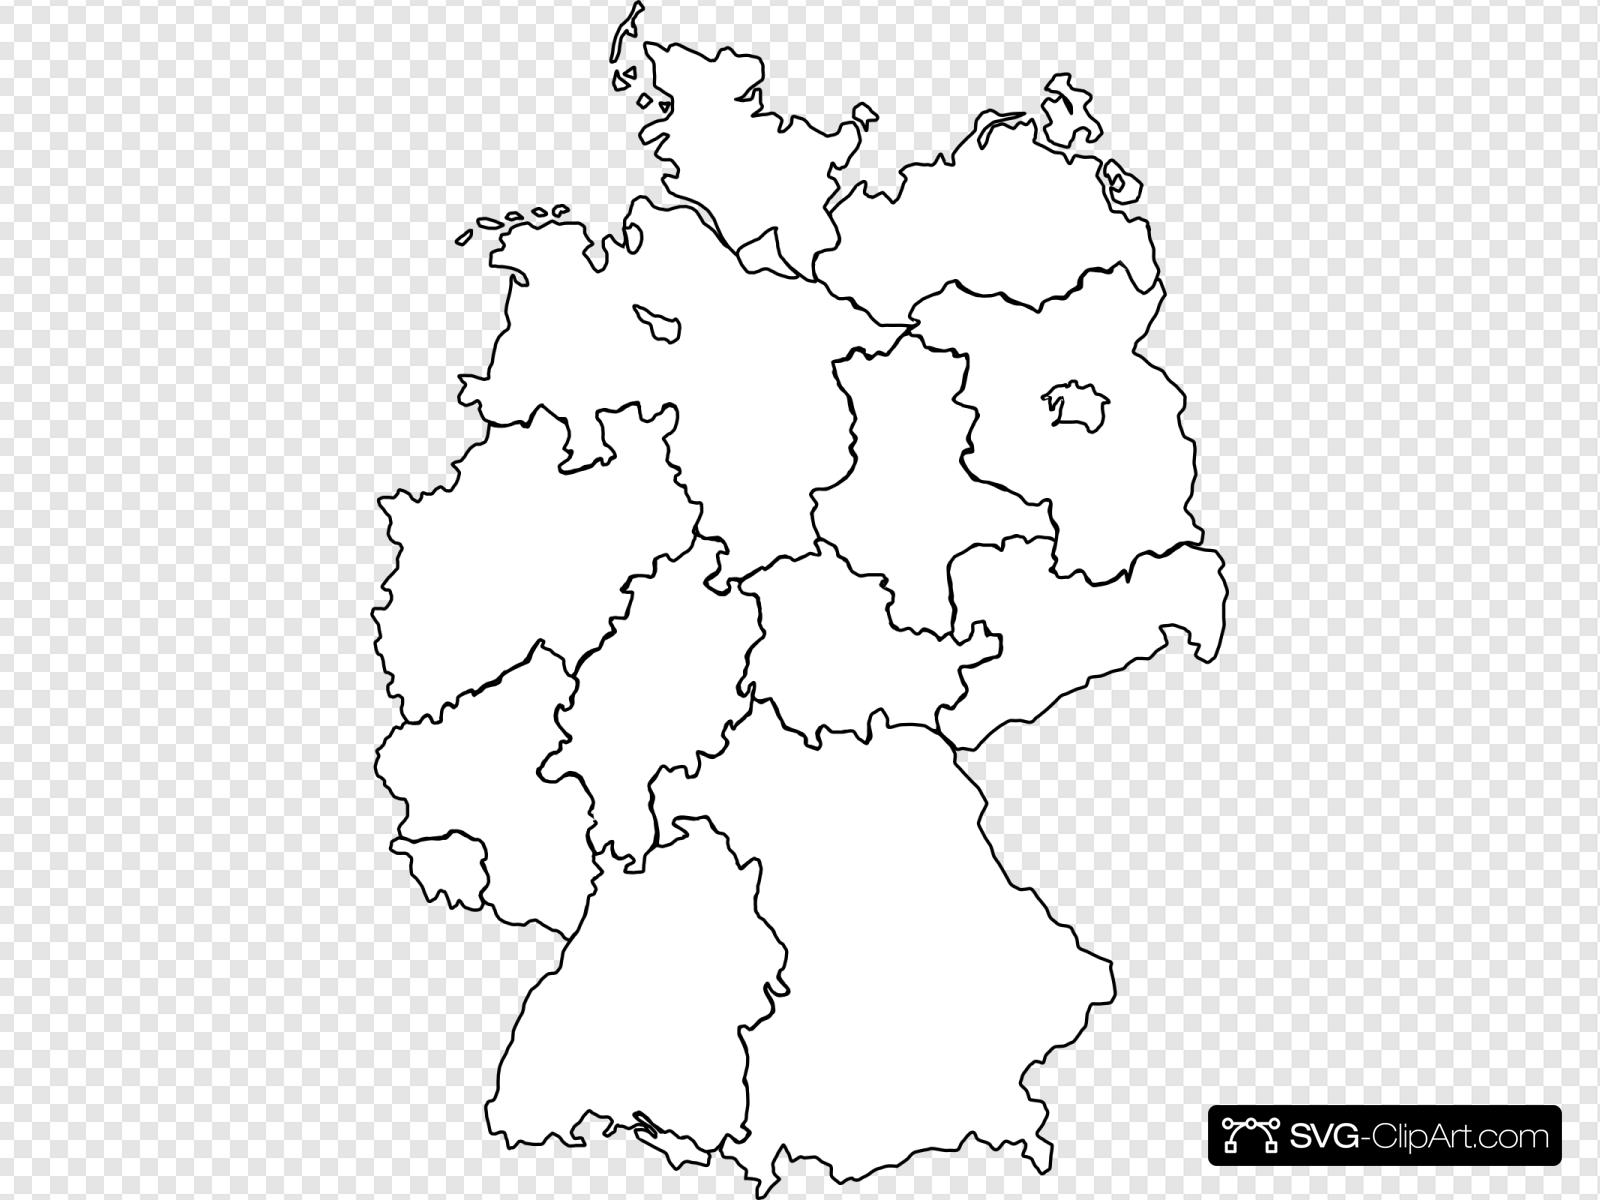 Germany Svg Vector Germany Clip Art Svg Clipart